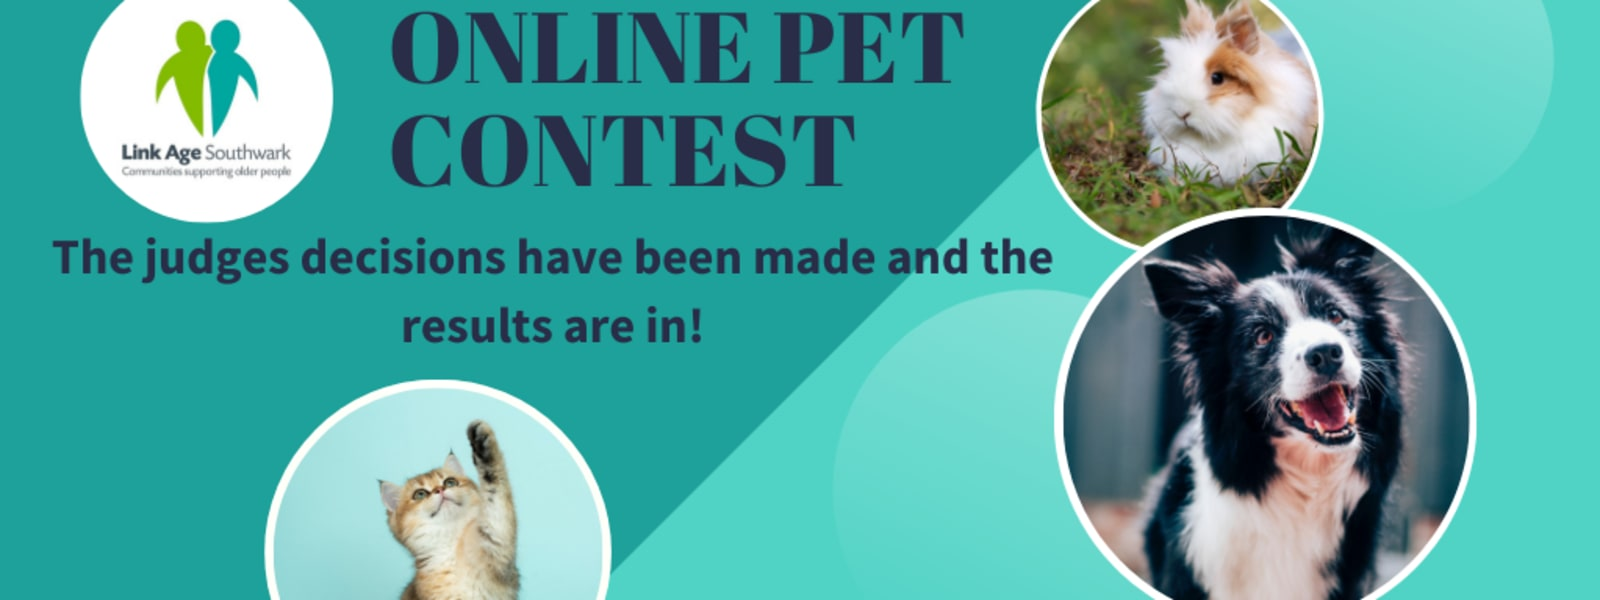 Online Pet Contest Results